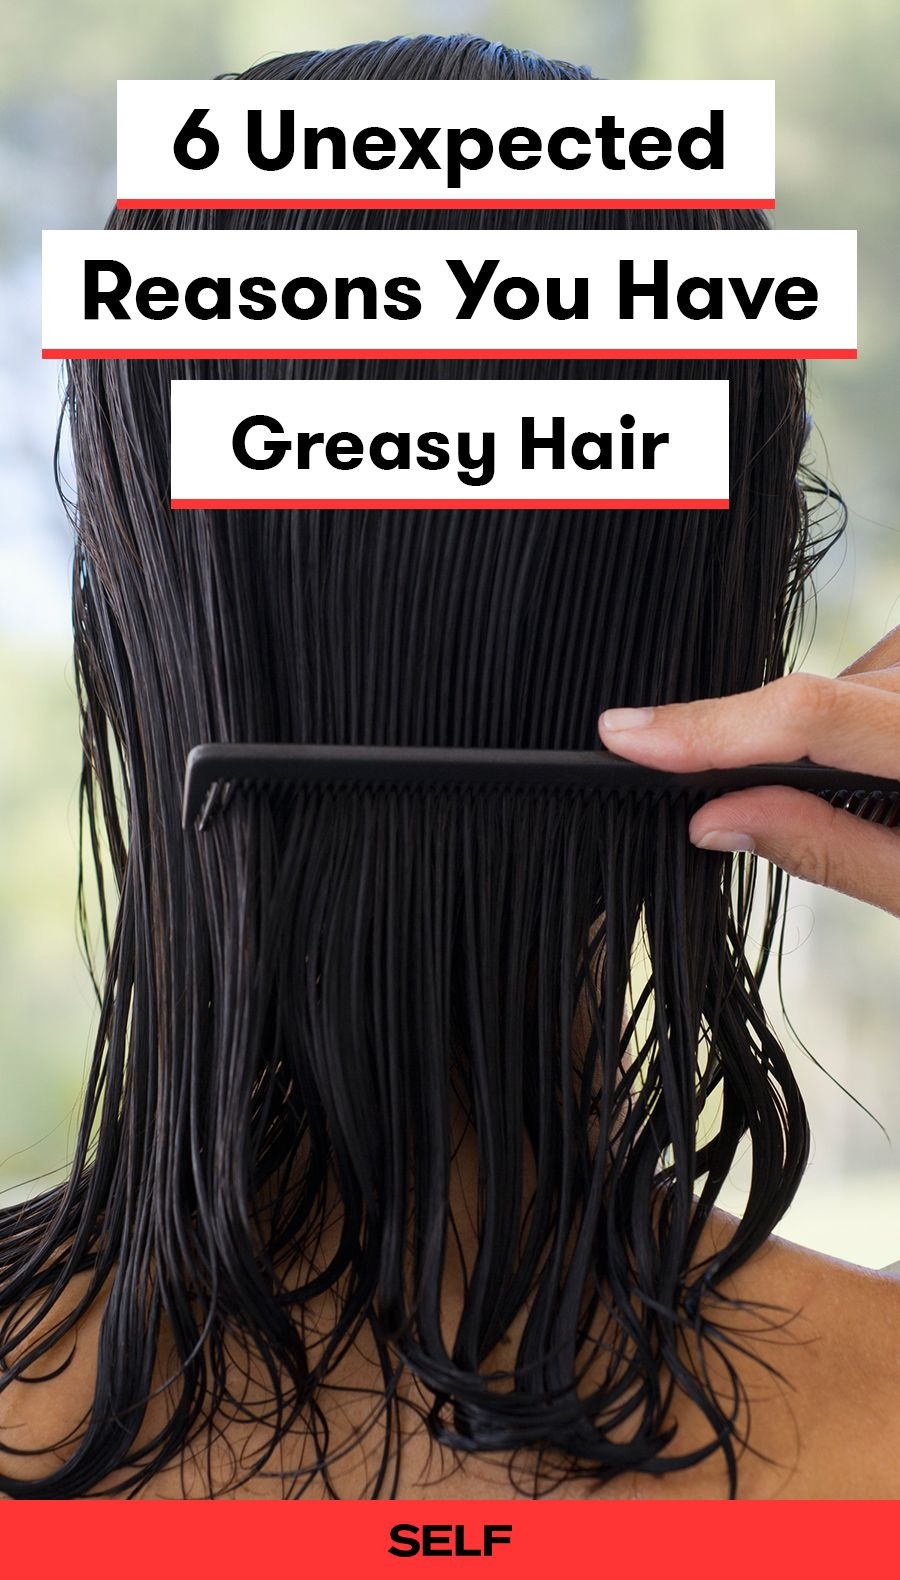 6 Unexpected Reasons You Have Greasy Hair Greasy Hair Hairstyles Hair Washing Routine Washing Greasy Hair